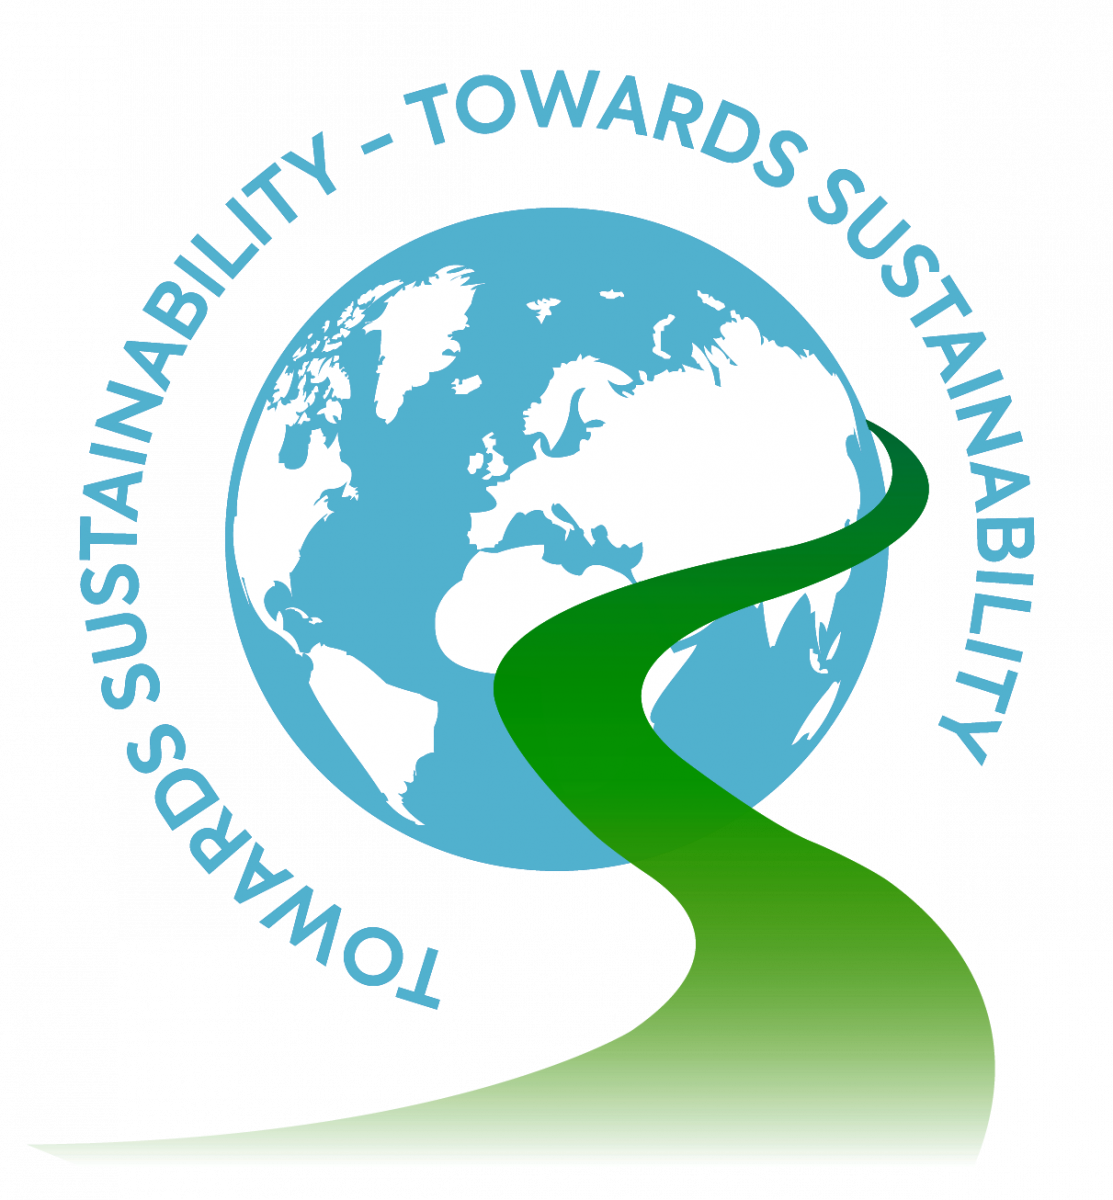 Robeco & RobecoSAM receive another 16 'Towards Sustainability' labels